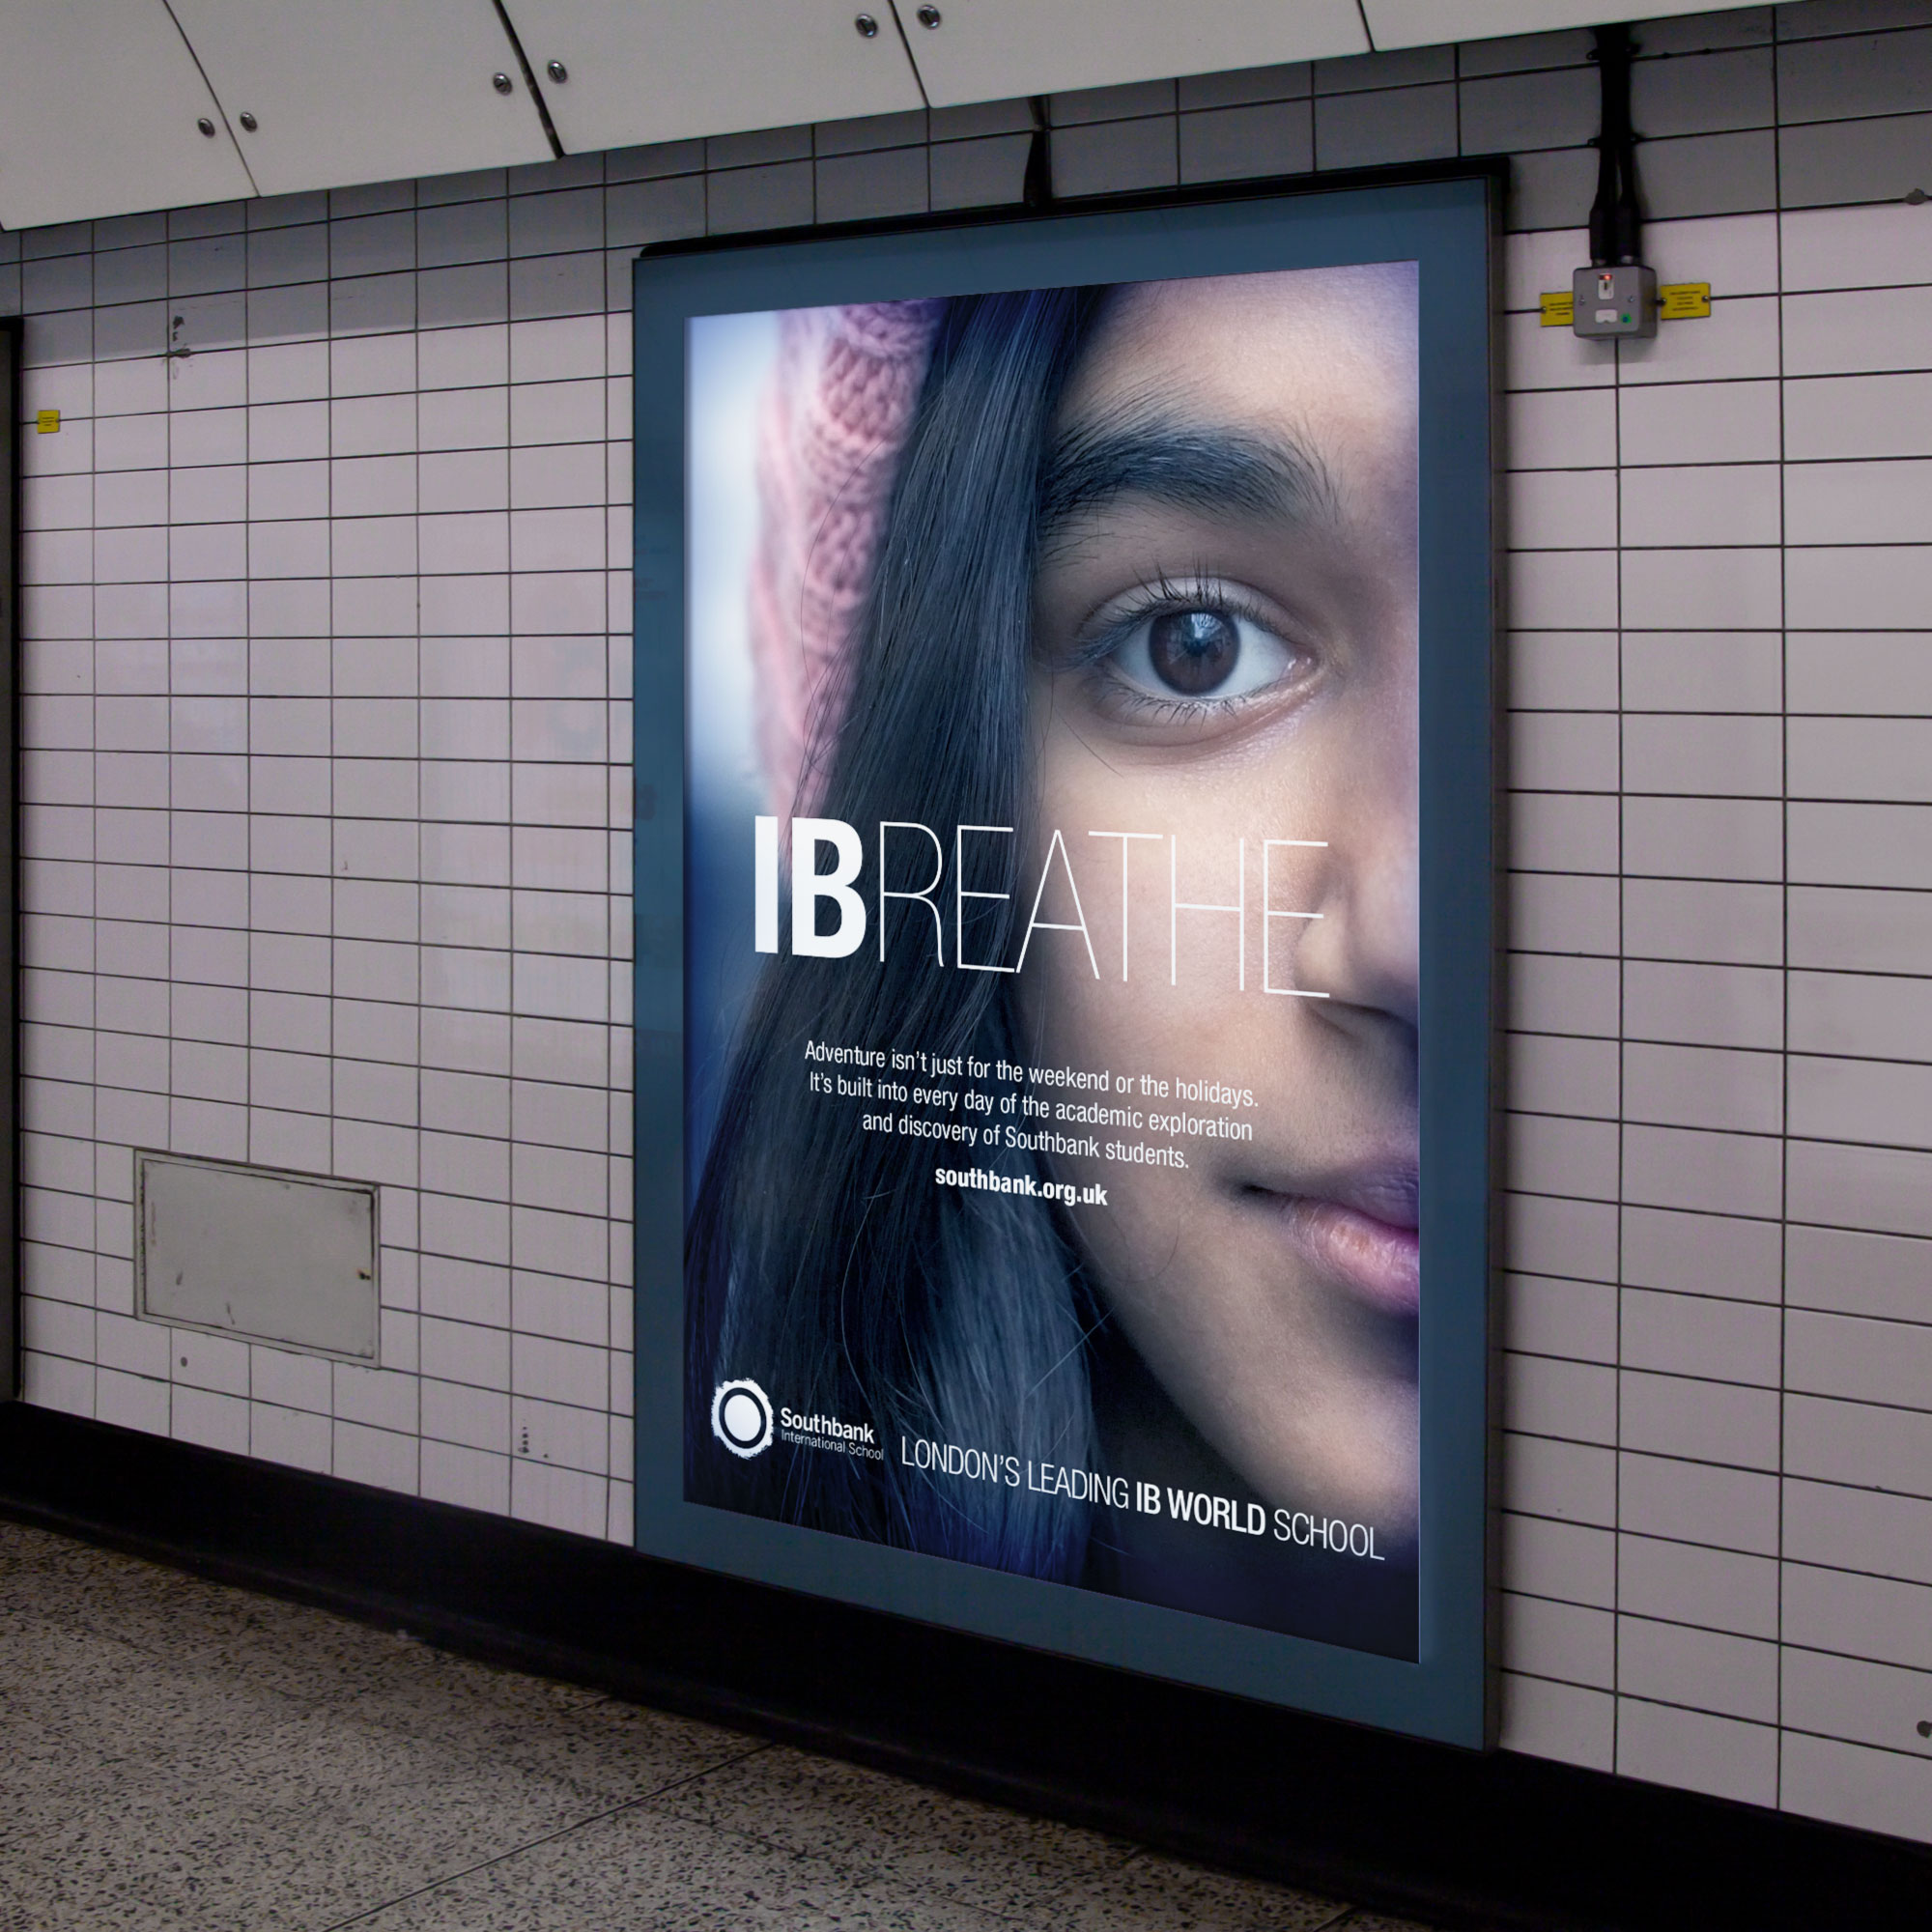 Image showing the campaign advertising in a tube station